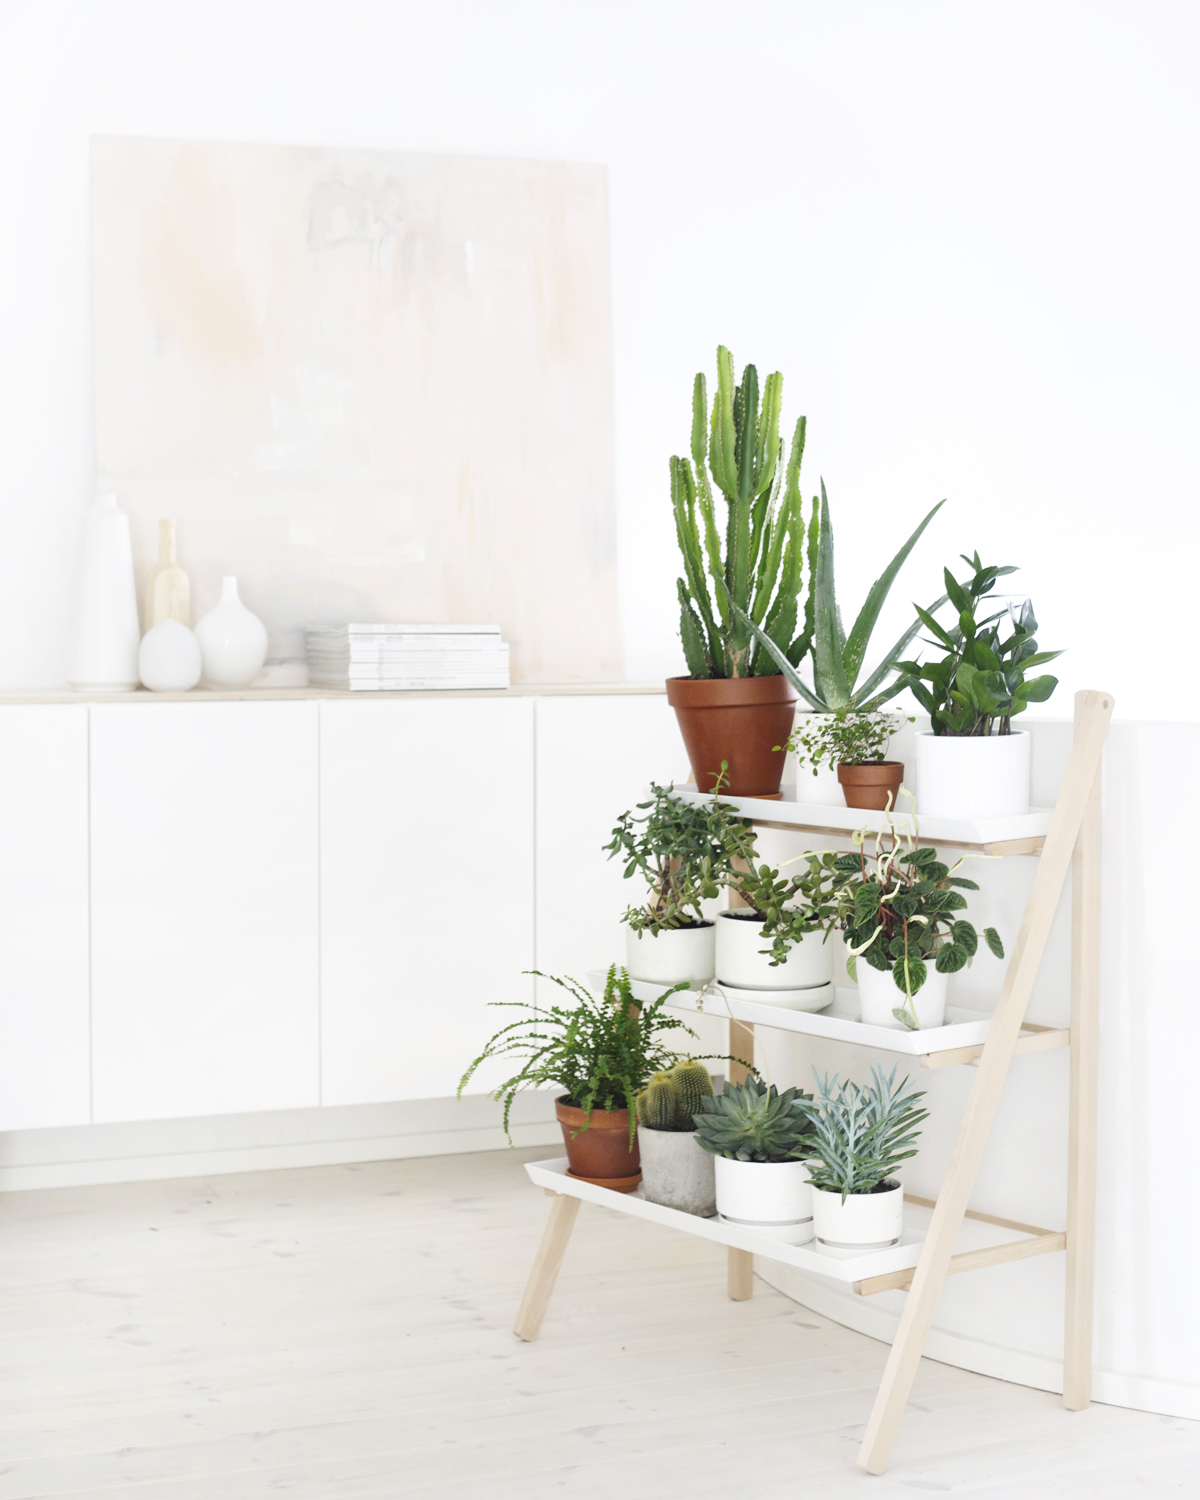 T d c interior styling indoor plants - Decorate home with plants ...